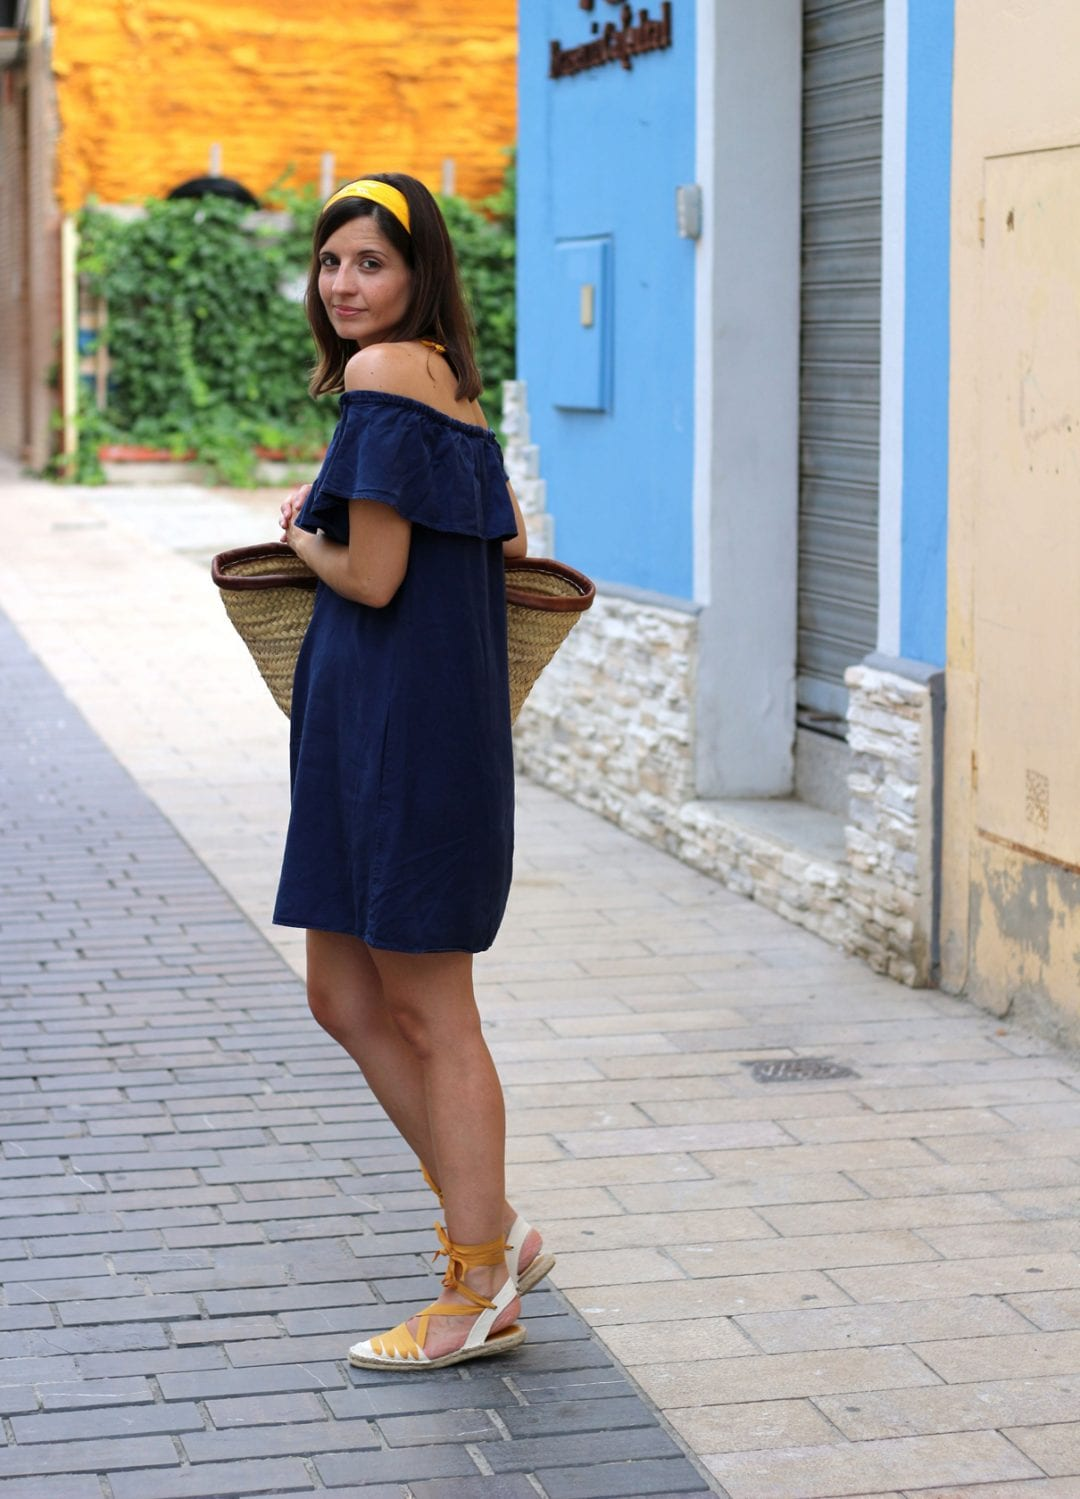 spanish fashion blogger sith off shoulders dress, espadrilles and basket